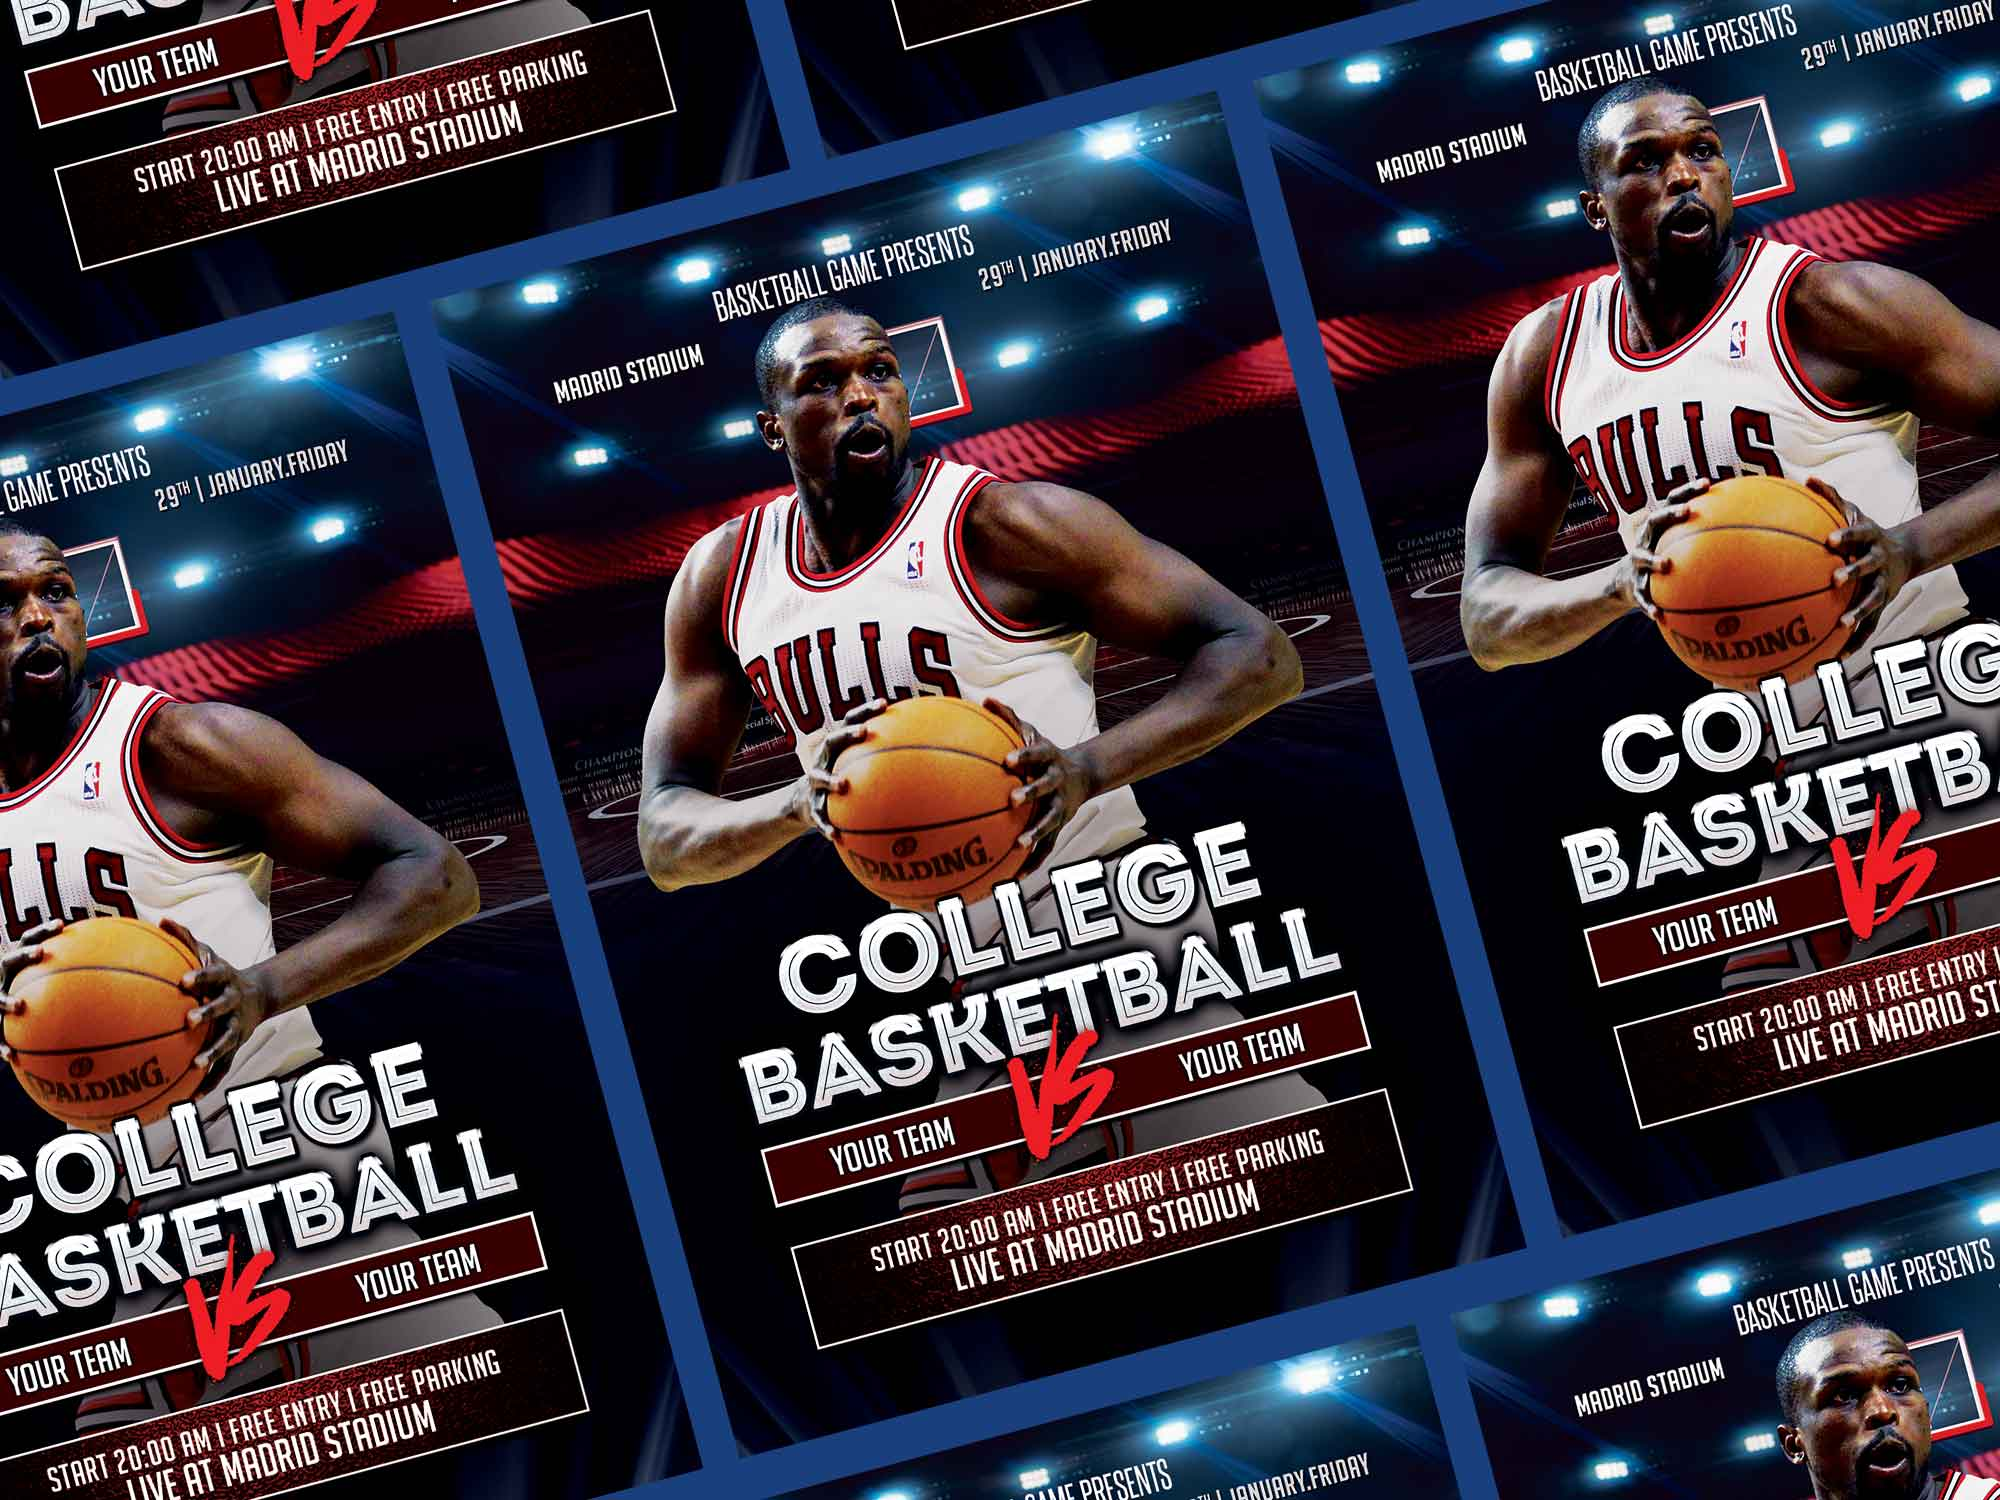 College Basketball Flyer Template 2